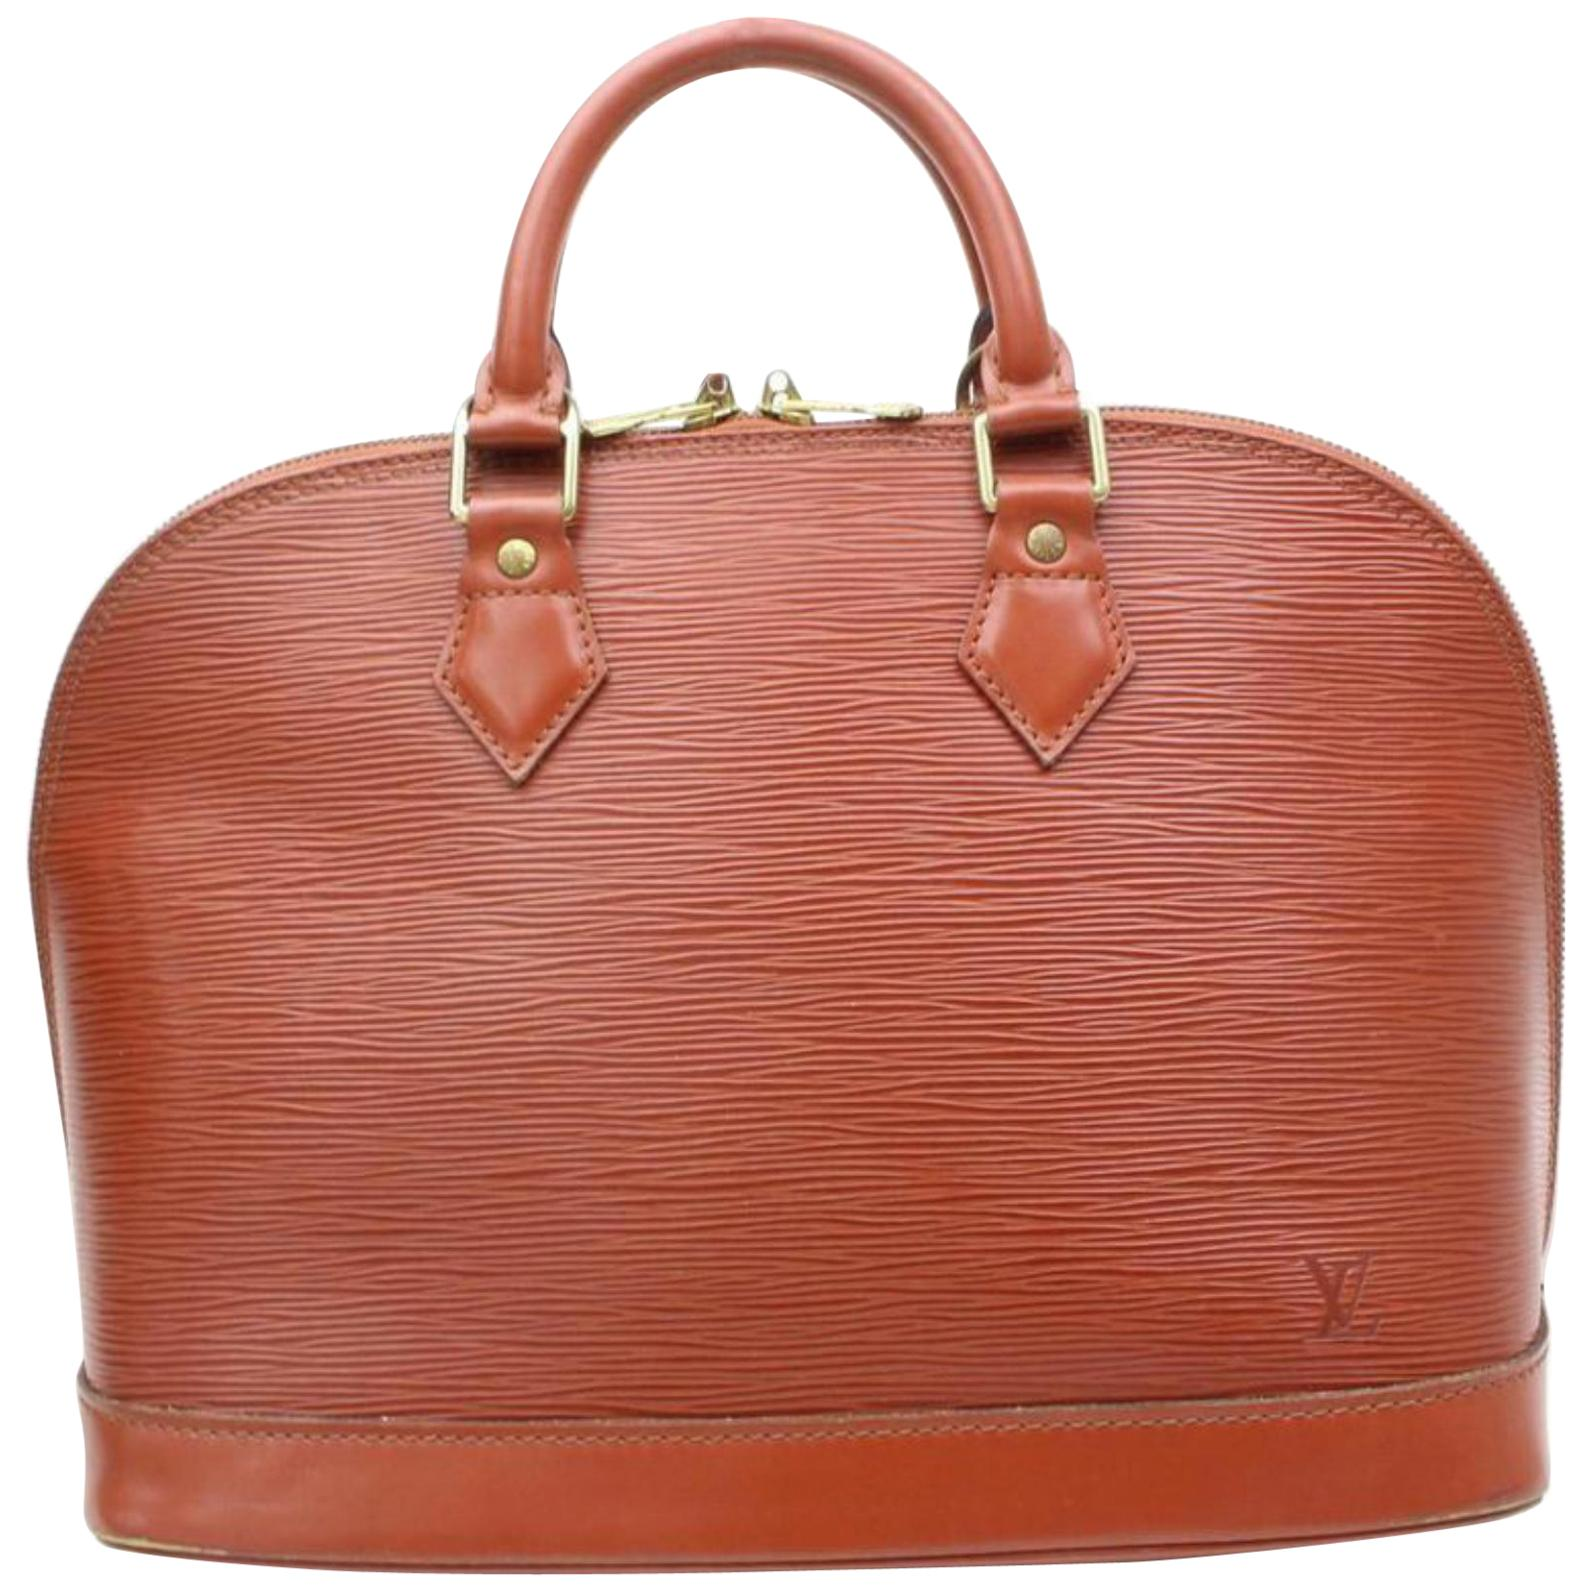 a106cf974cd9 Designer Bags Under $1000 - 13284 For Sale on 1stdibs